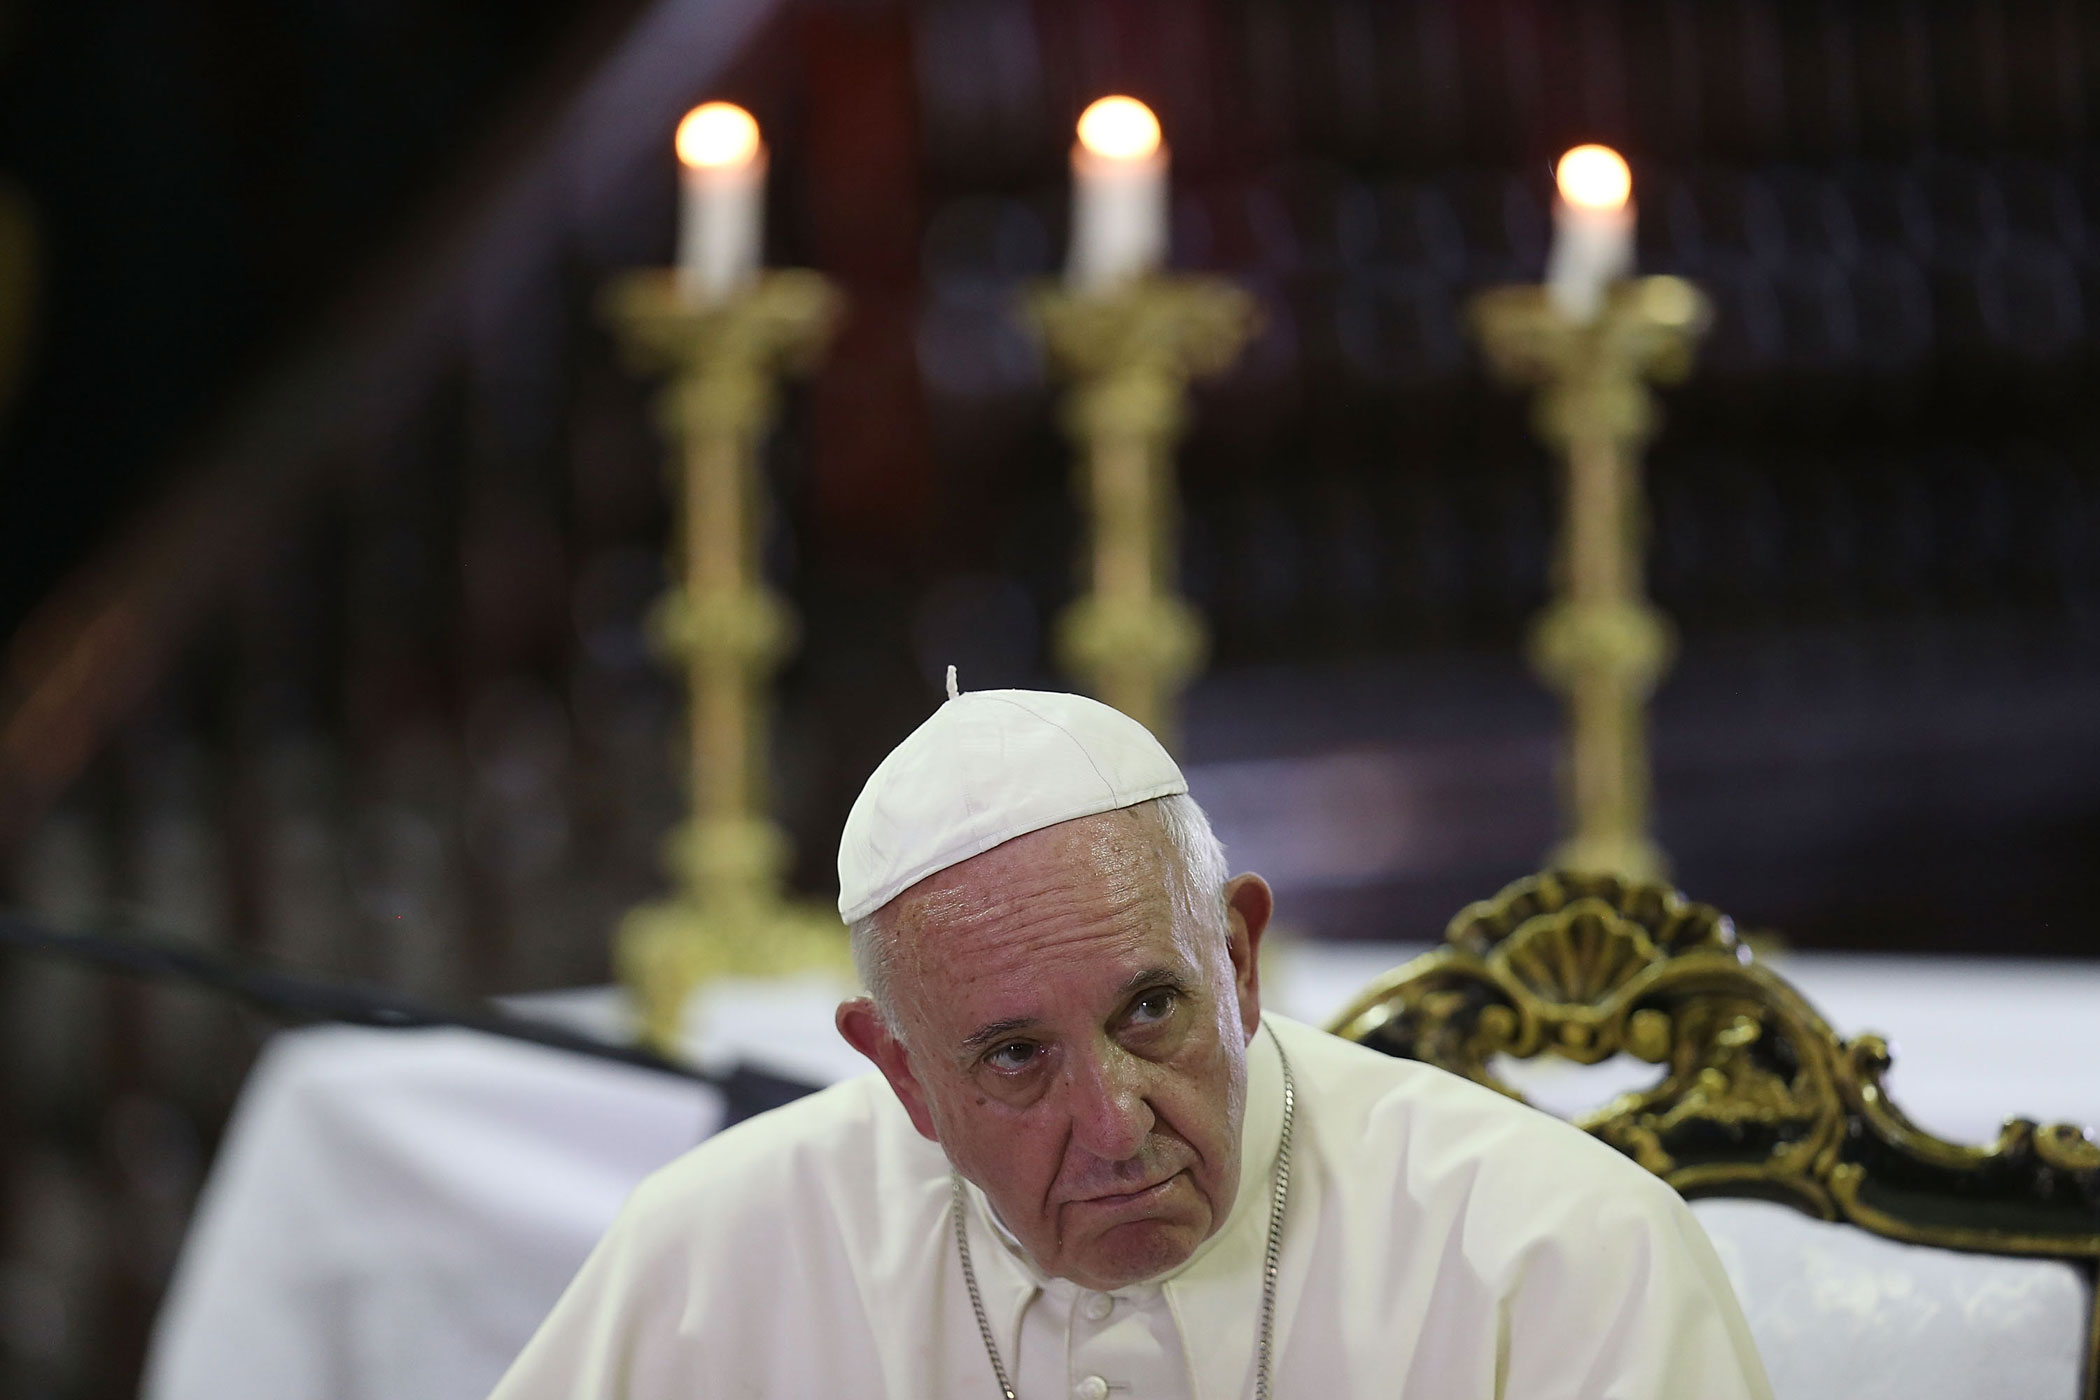 Pope Francis at a mass at the Cathedral of Our Lady of Assumption  on Sept. 22, 2015 in Santiago de Cuba, Cuba.